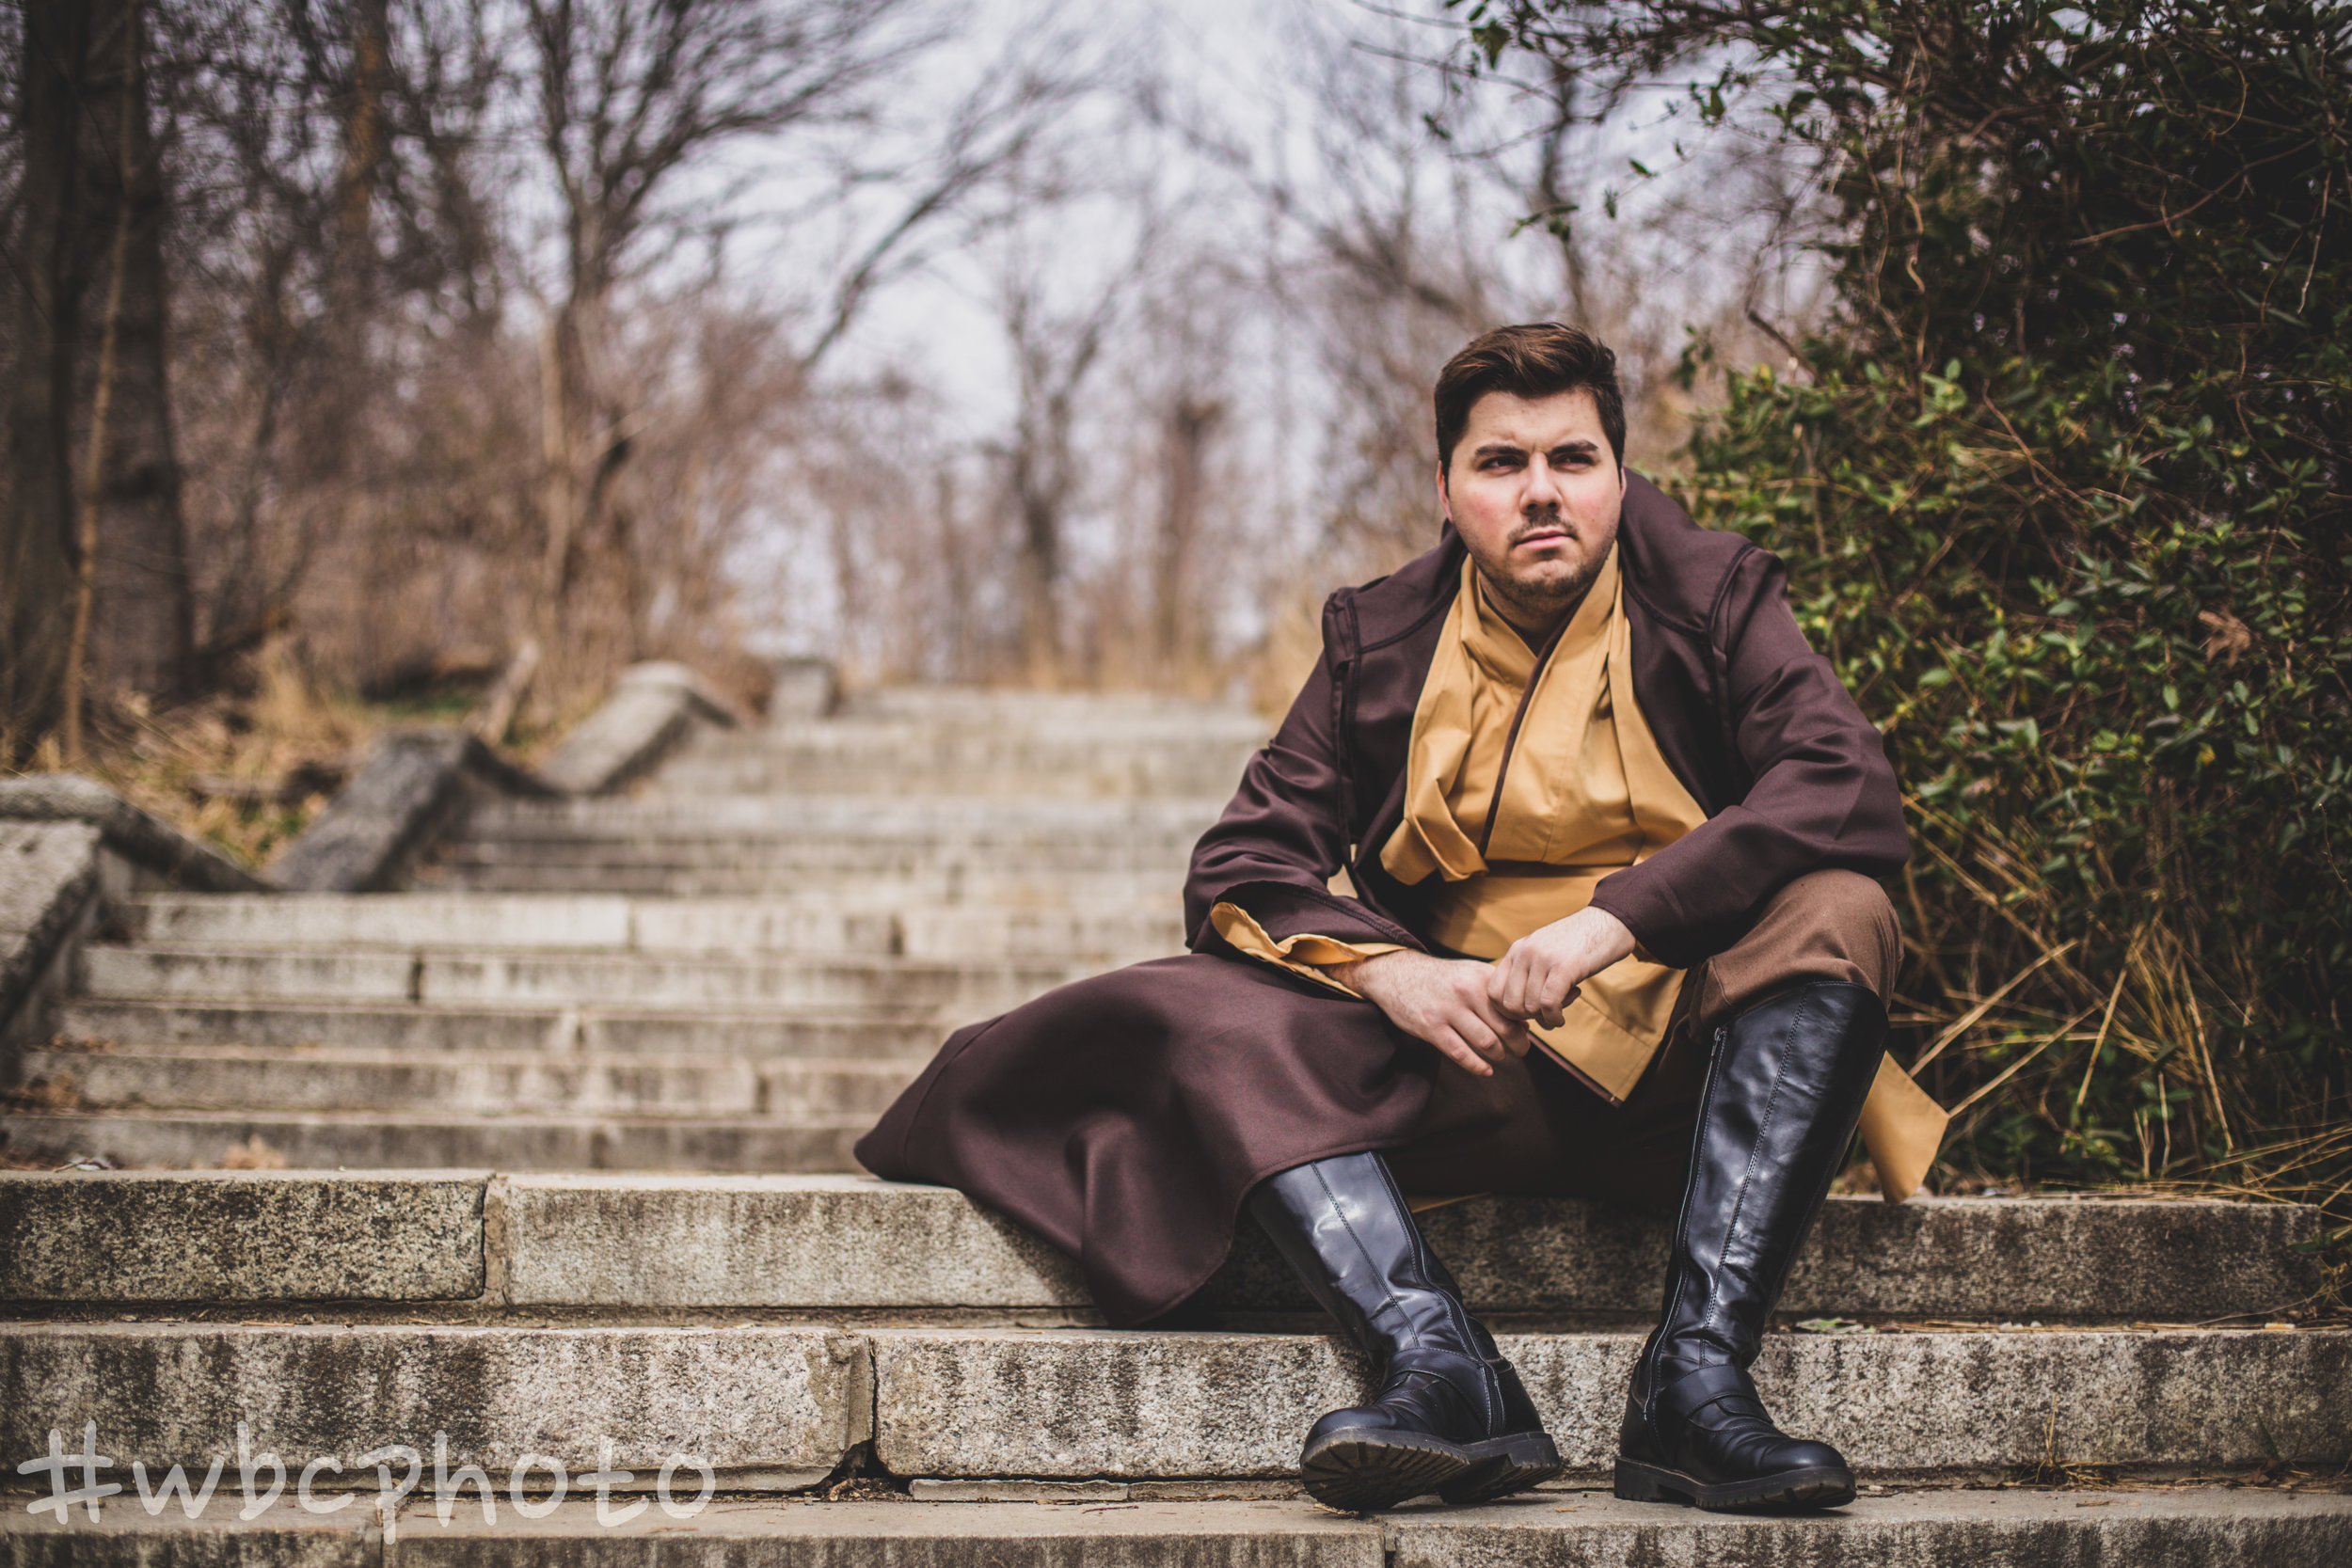 Cosplay extraordinnaire Chris Calfa nails life as young Jedi.